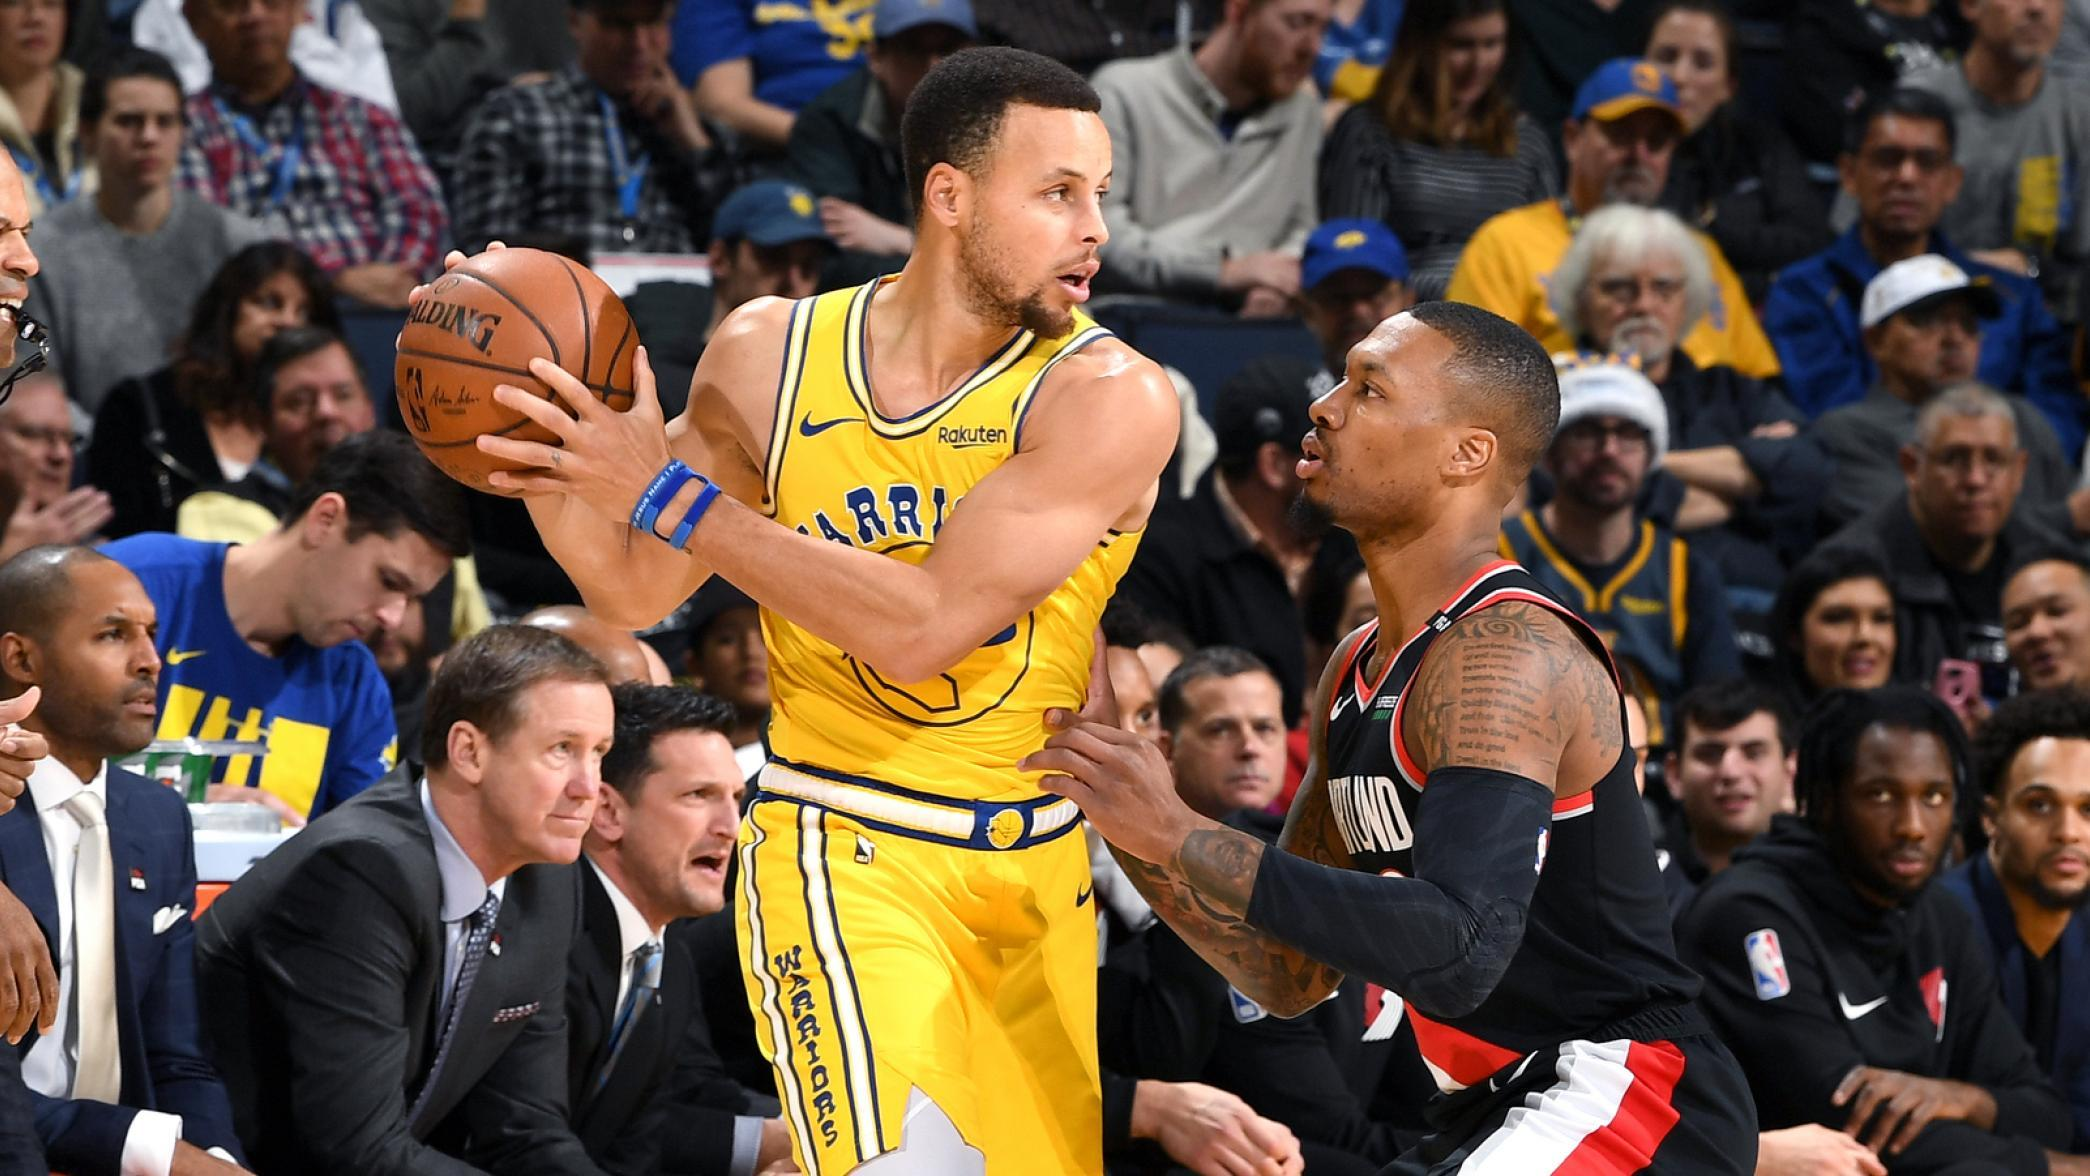 trail blazers vs warriors - photo #8